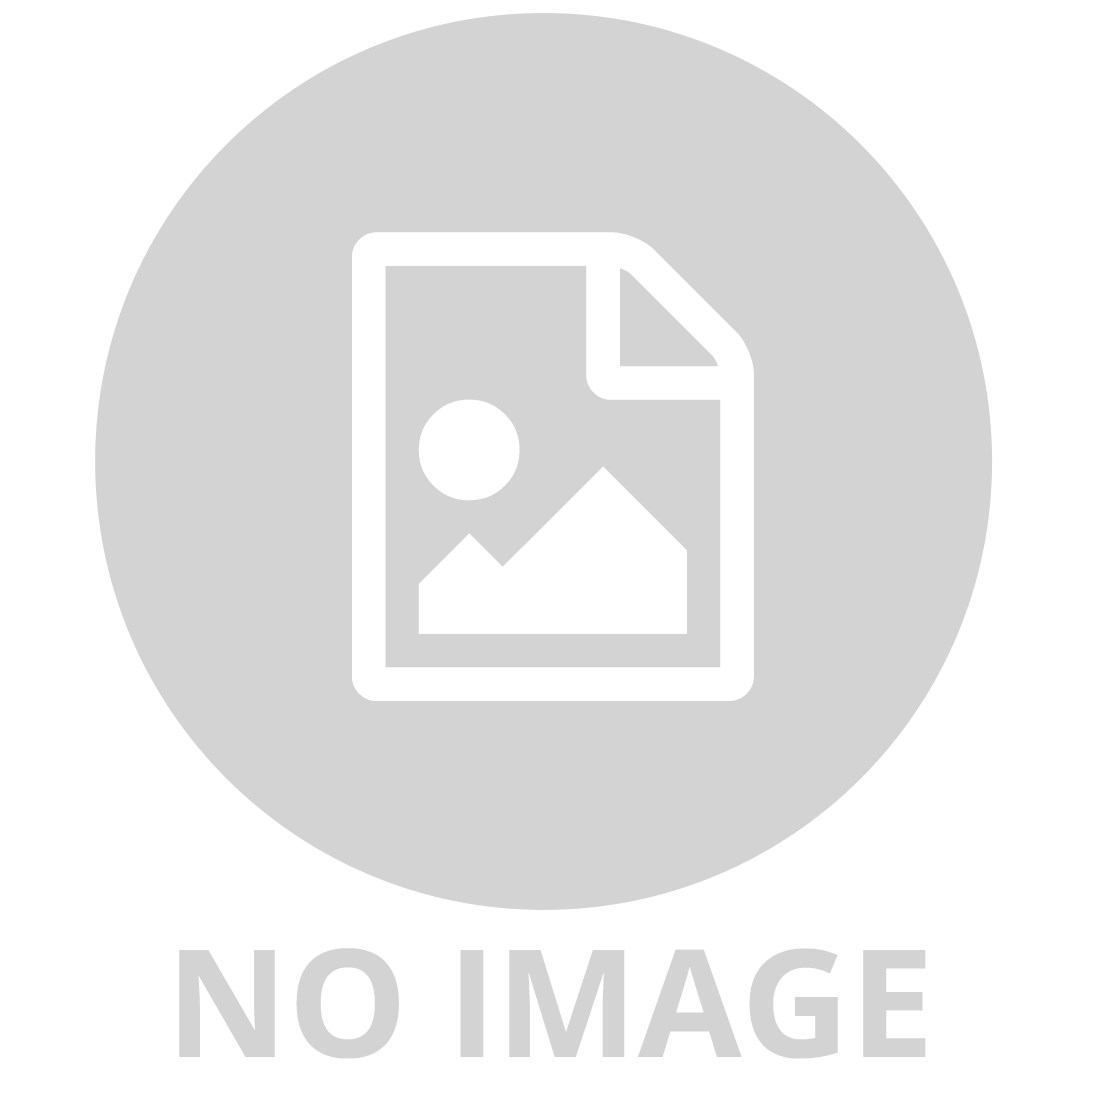 TAMIYA TS-2 DARK GREEN SPRAY PAINT FOR PLASTICS